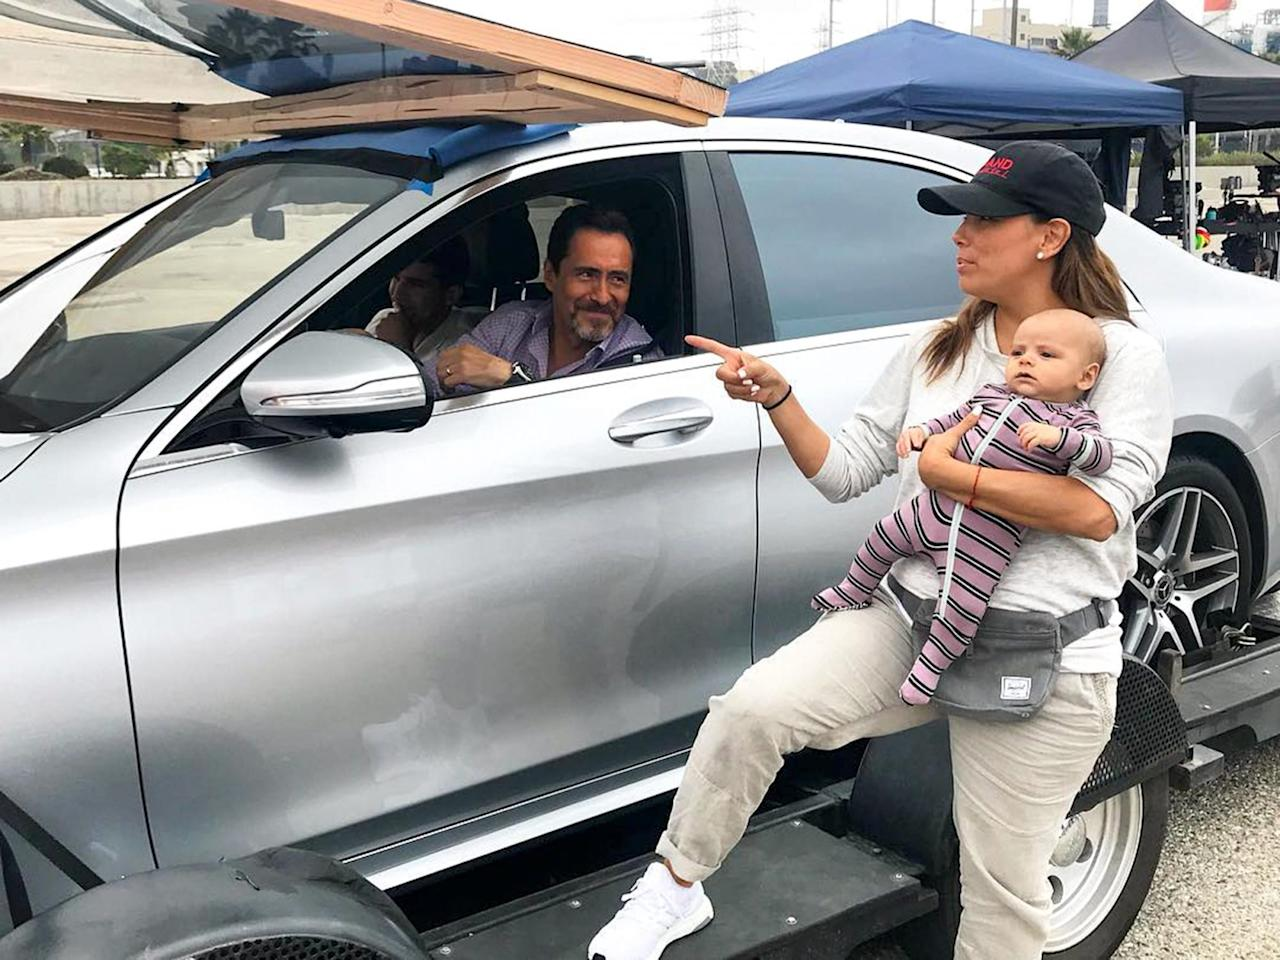 """<p>Santiago joined mom for some behind-the-scenes action on set of her show <em>Grand Hotel</em>, and even got to meet Demian Bichir, who plays the main character who shares his name! """"Santiago, meet Santiago,"""" Longoria <a href=""""https://www.instagram.com/p/Bned7YrgrGd/?taken-by=evalongoria"""">captioned the shot.</a></p>"""